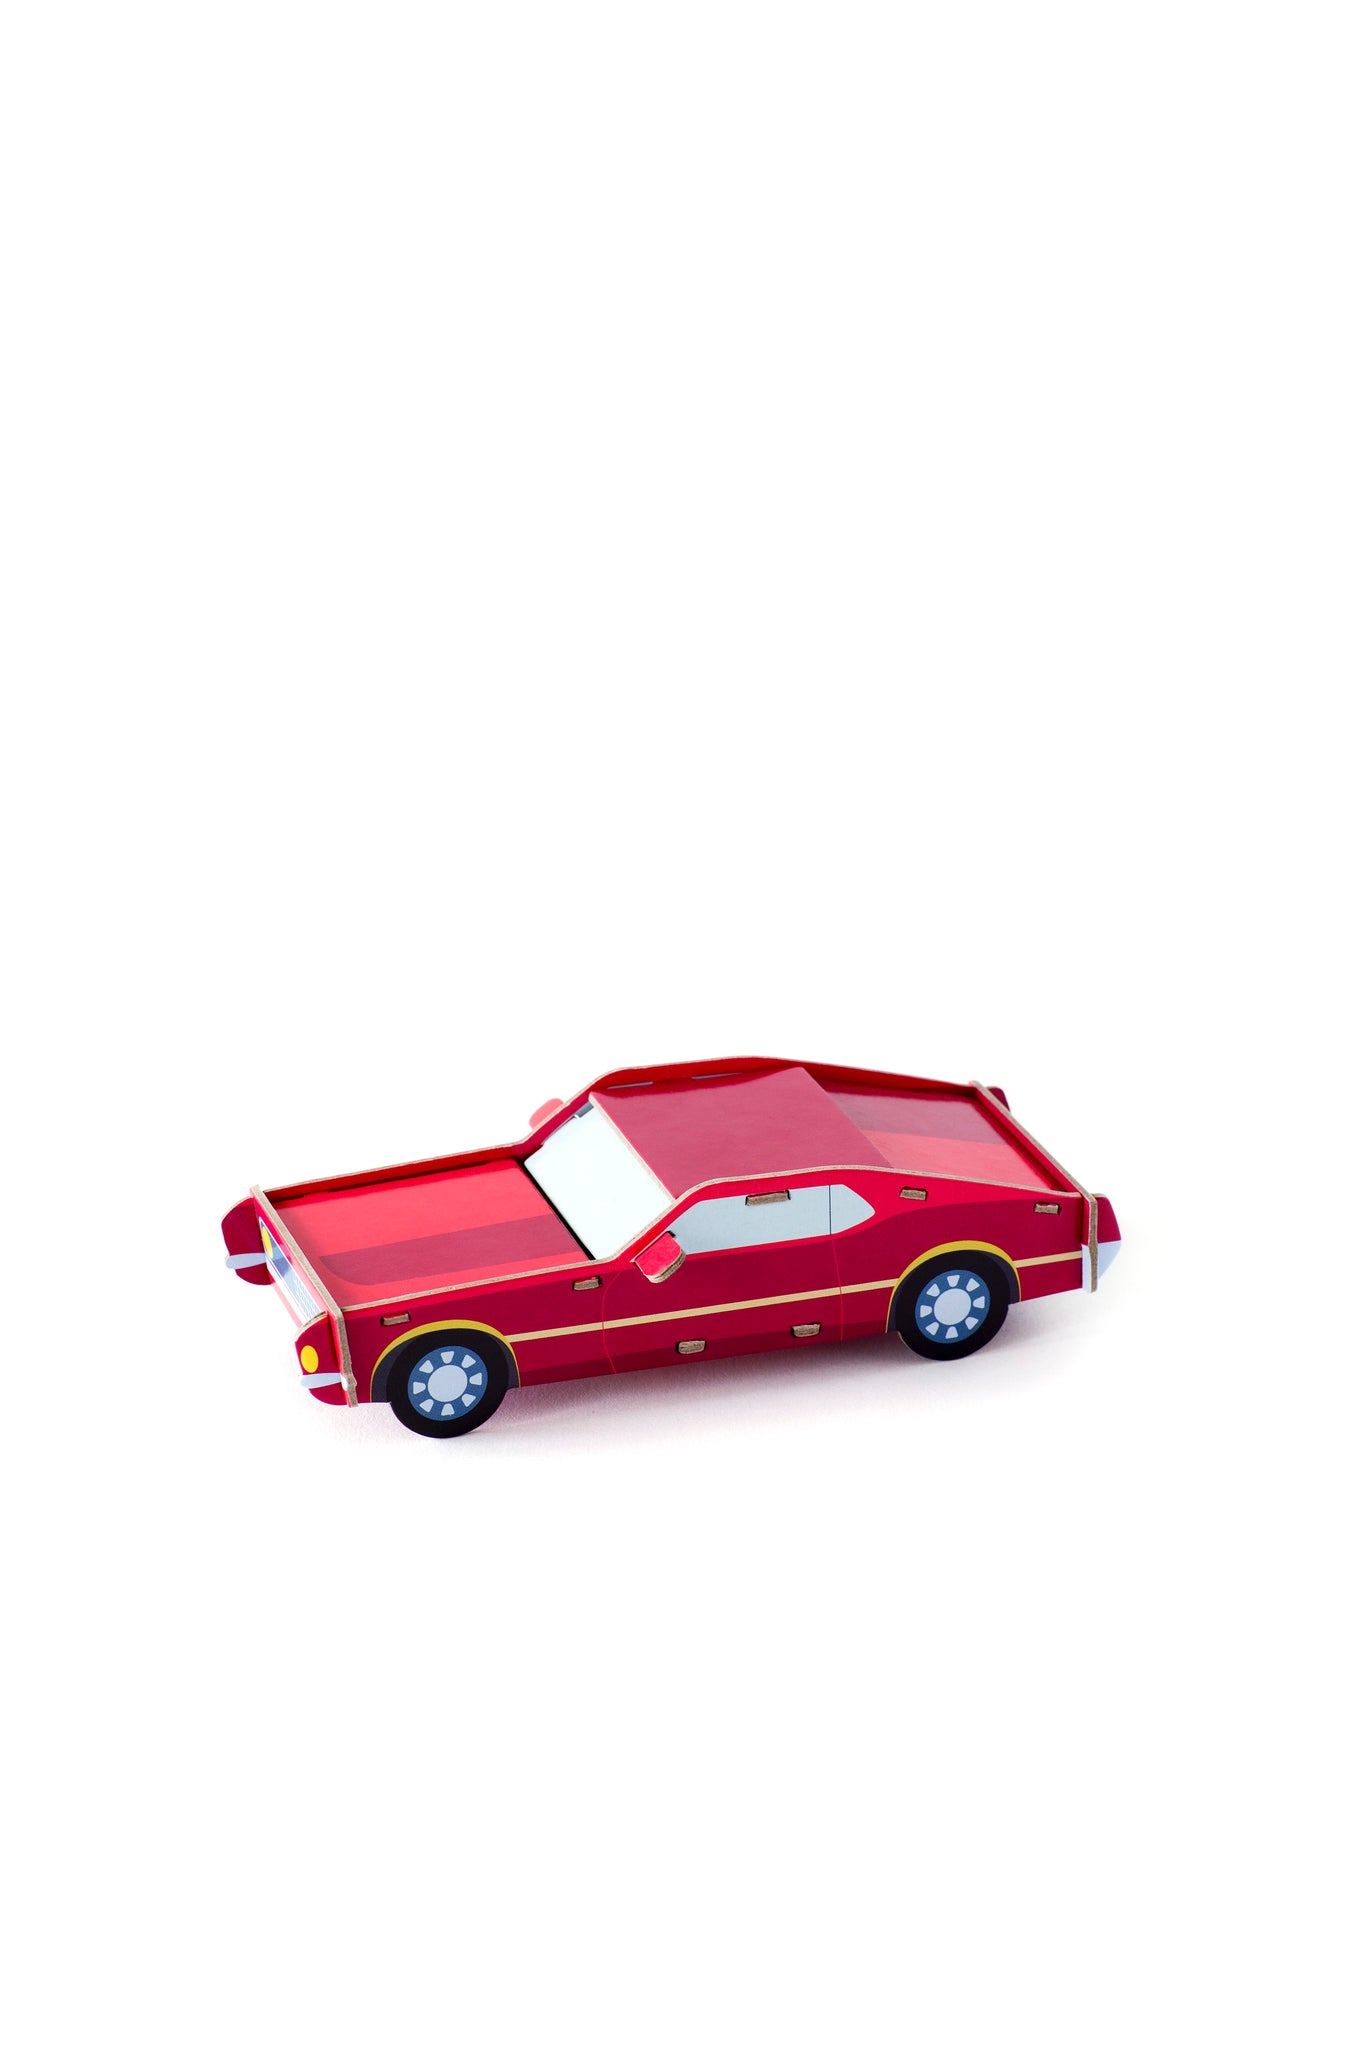 3D model auta - Klasika Ford Mustang